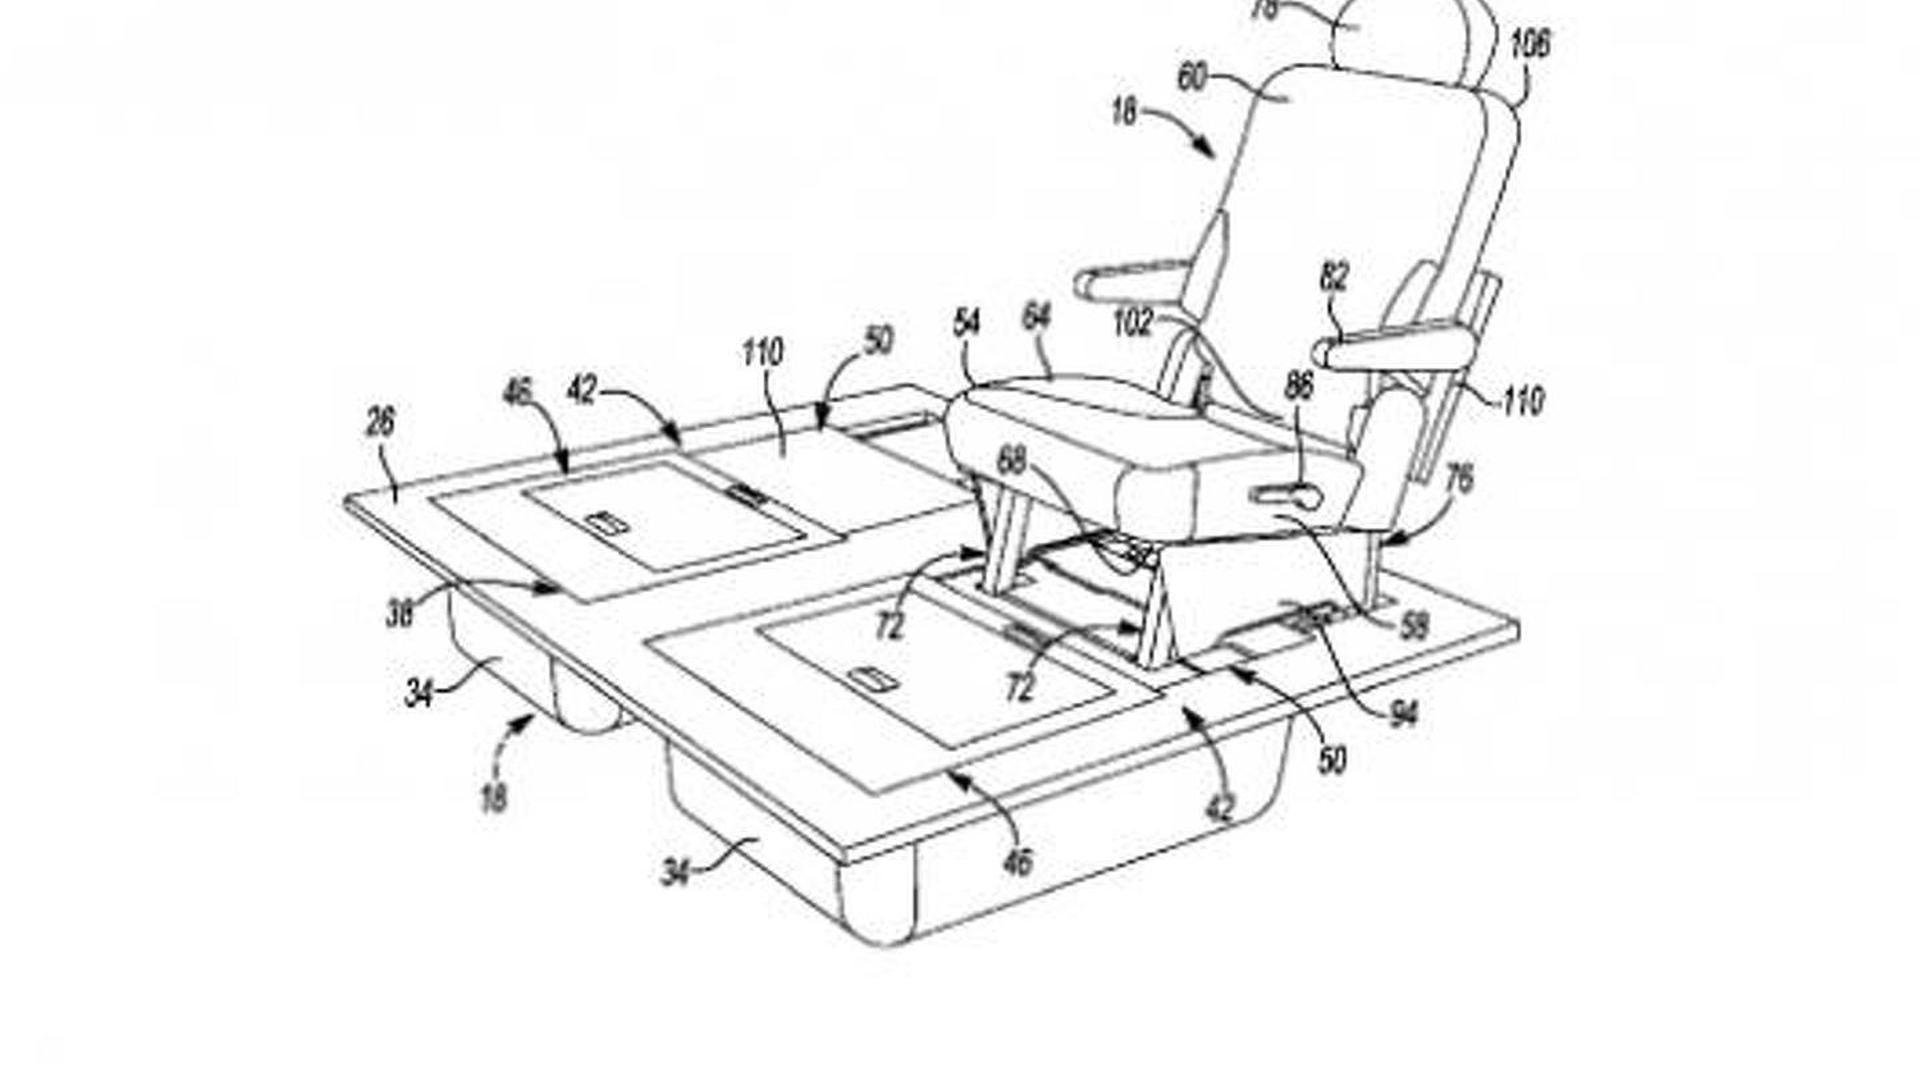 chrysler patents improved stow n go seats could debut on the 2015 Chrysler Minivan Inside chrysler patents improved stow n go seats could debut on the 2015 town country